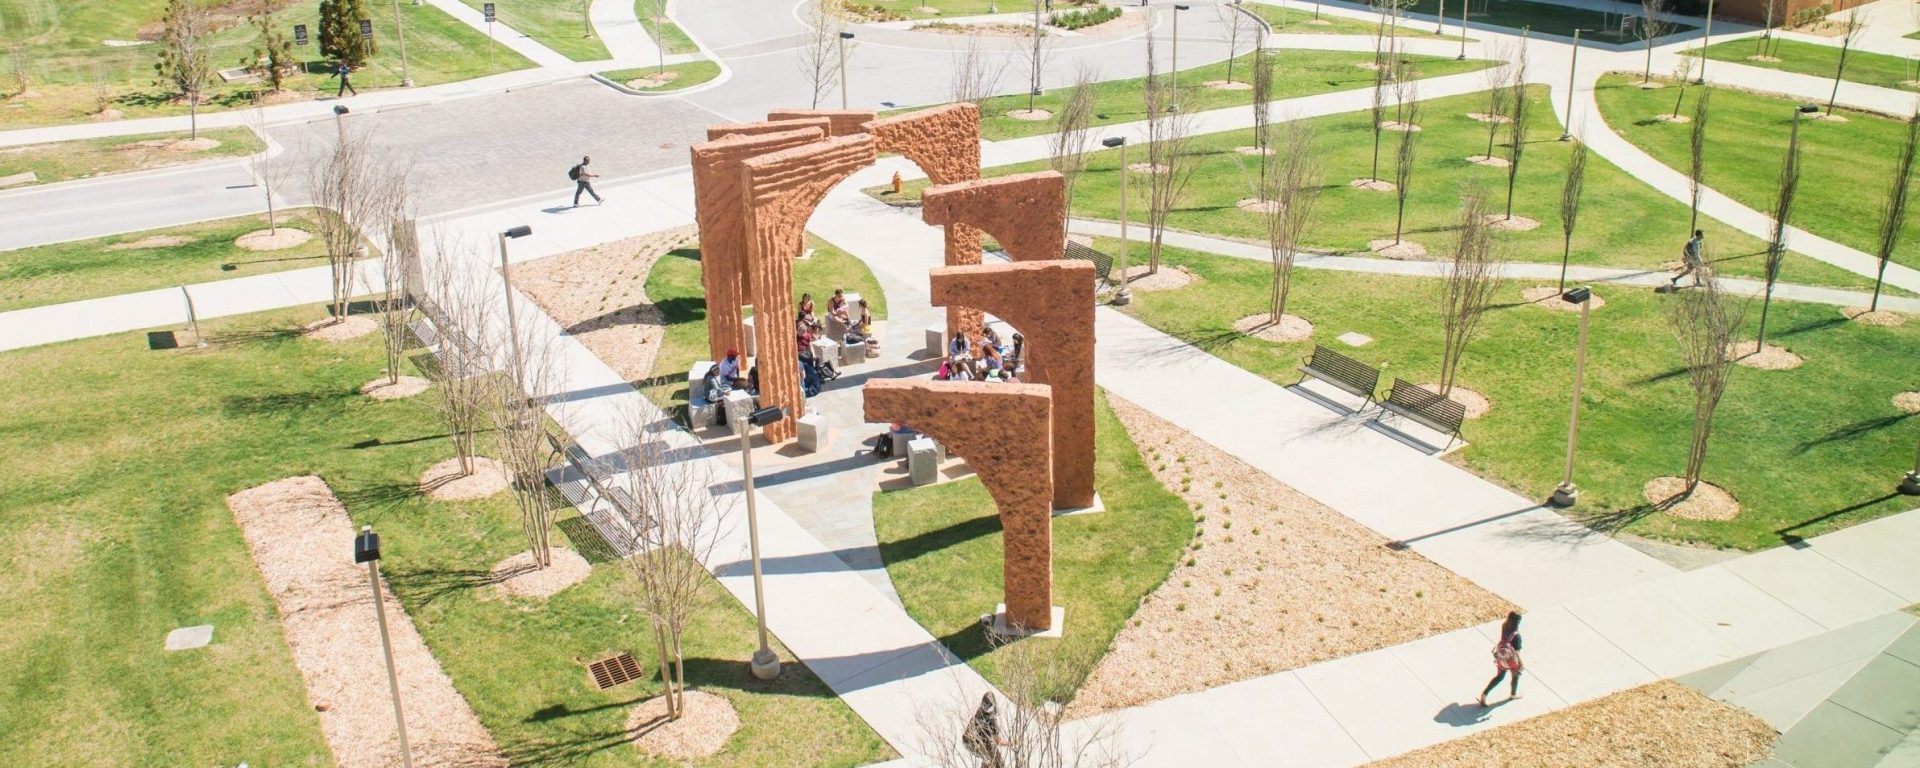 A large outdoor sculpture made of orange colored cement shaped in eight consecutive arches